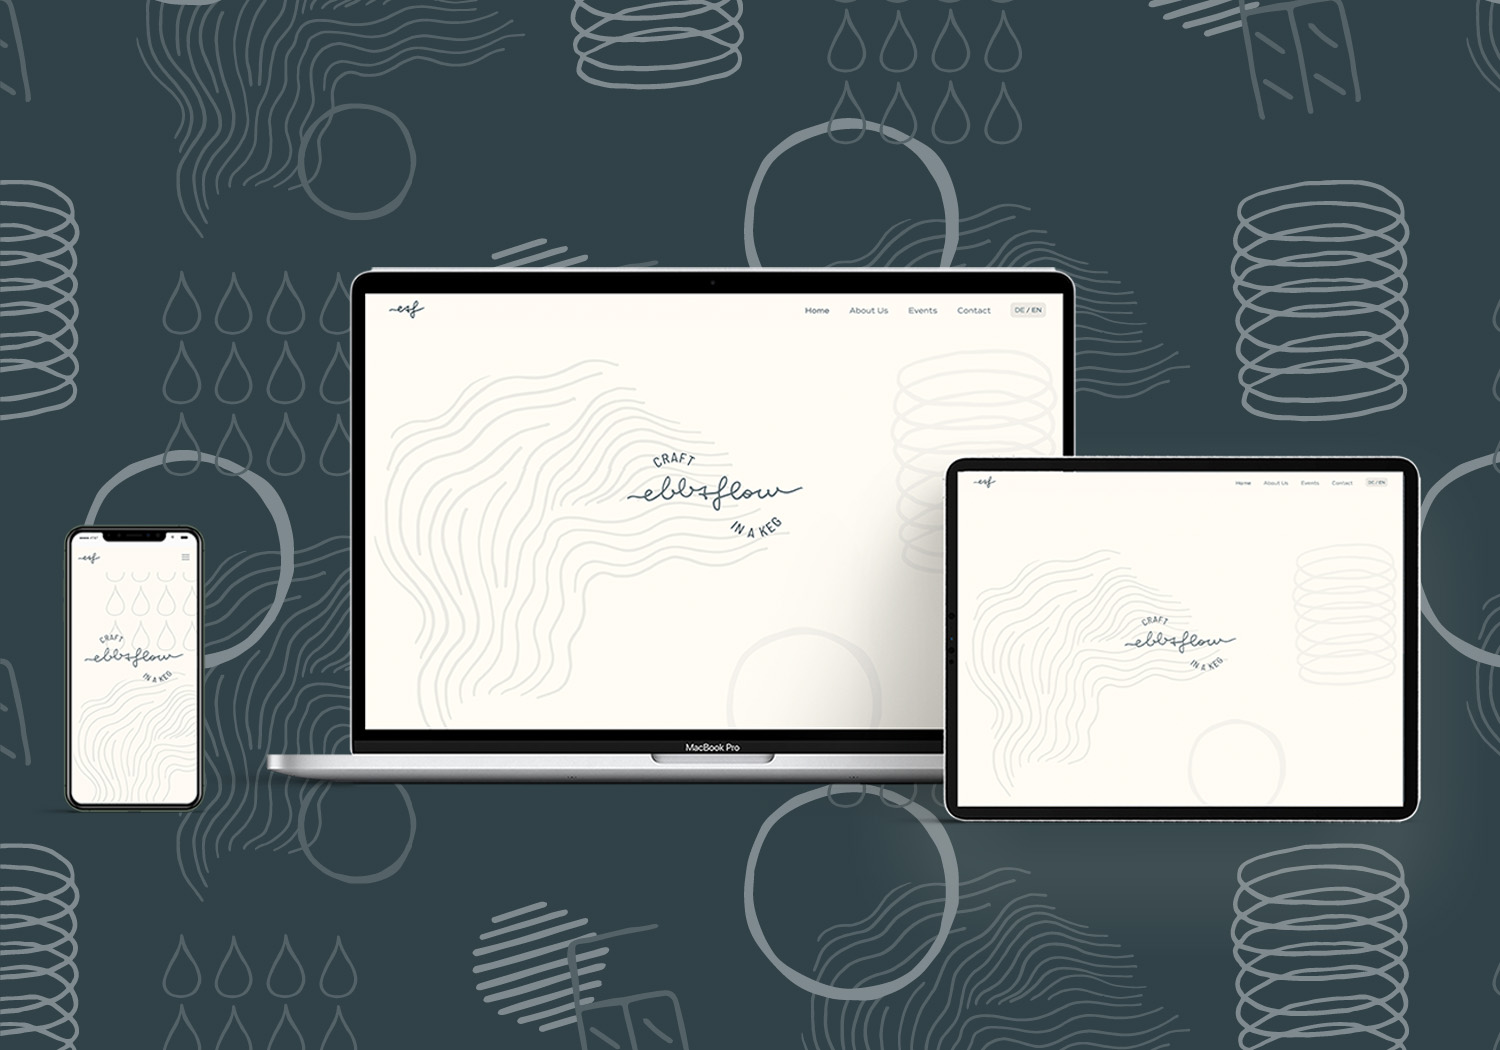 Ebb&Flow Keg - Web Design and Development by Magdalena Weiss